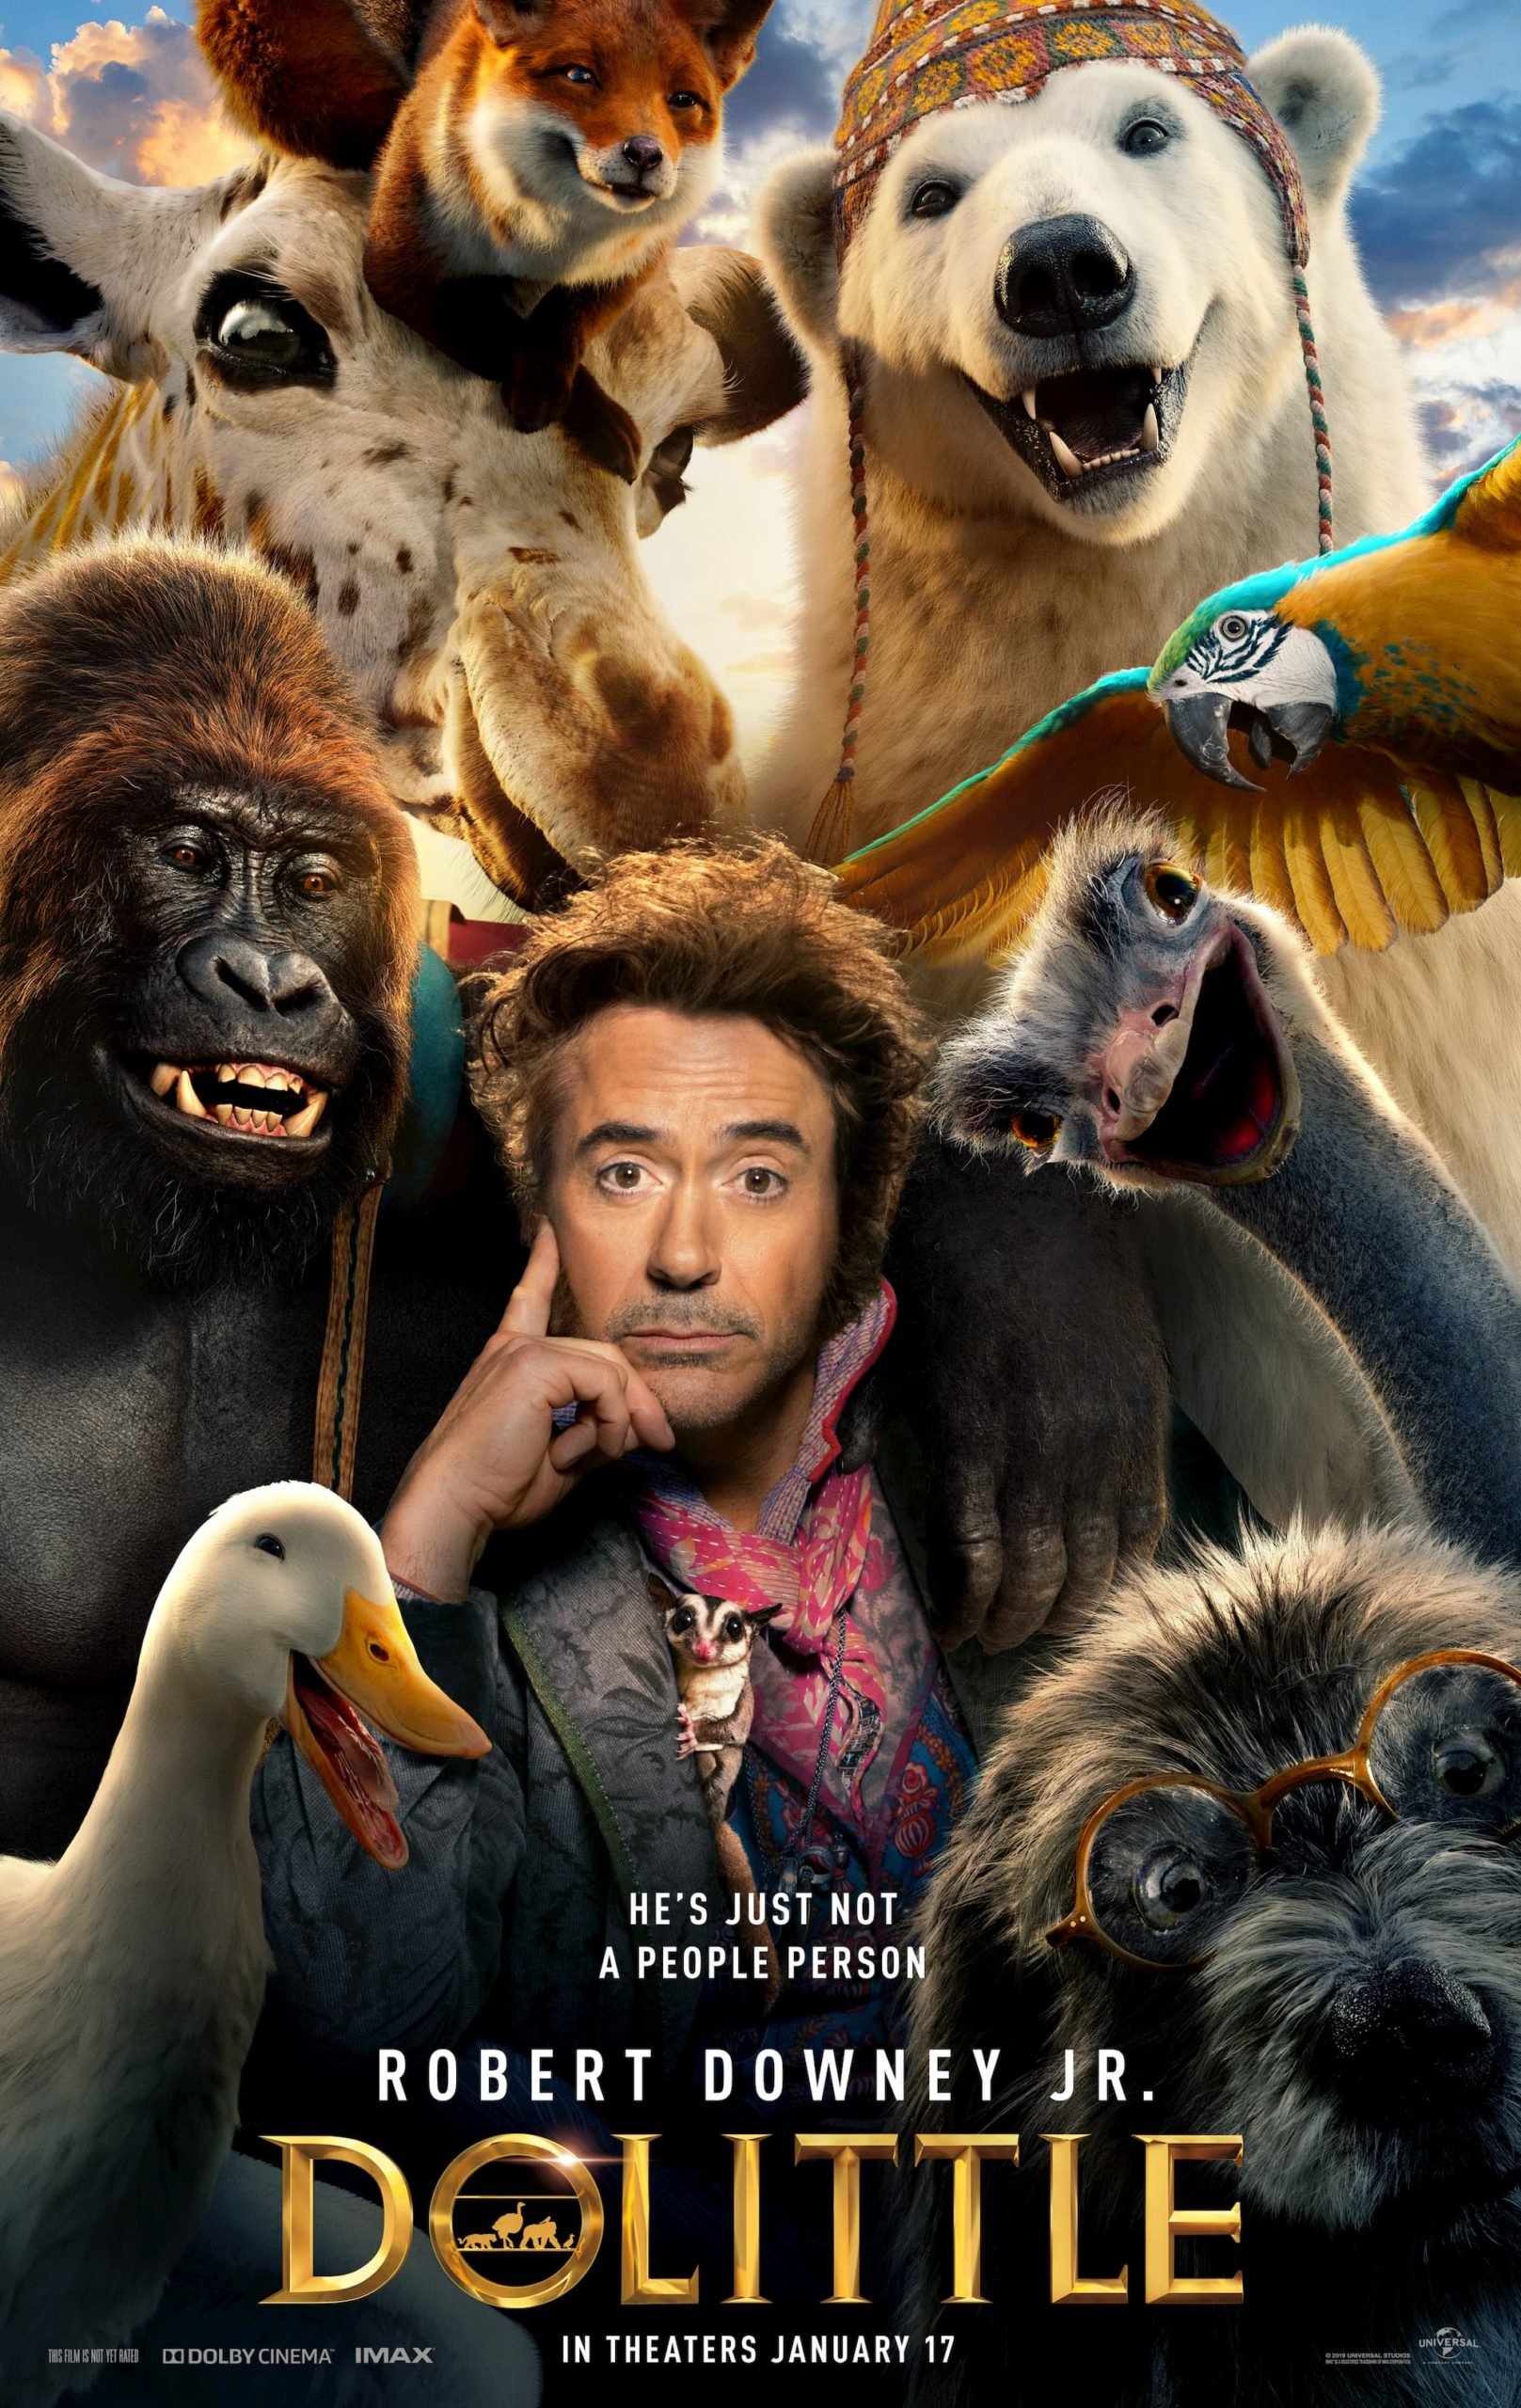 Dolittle: Spoiler-Free Movie Review